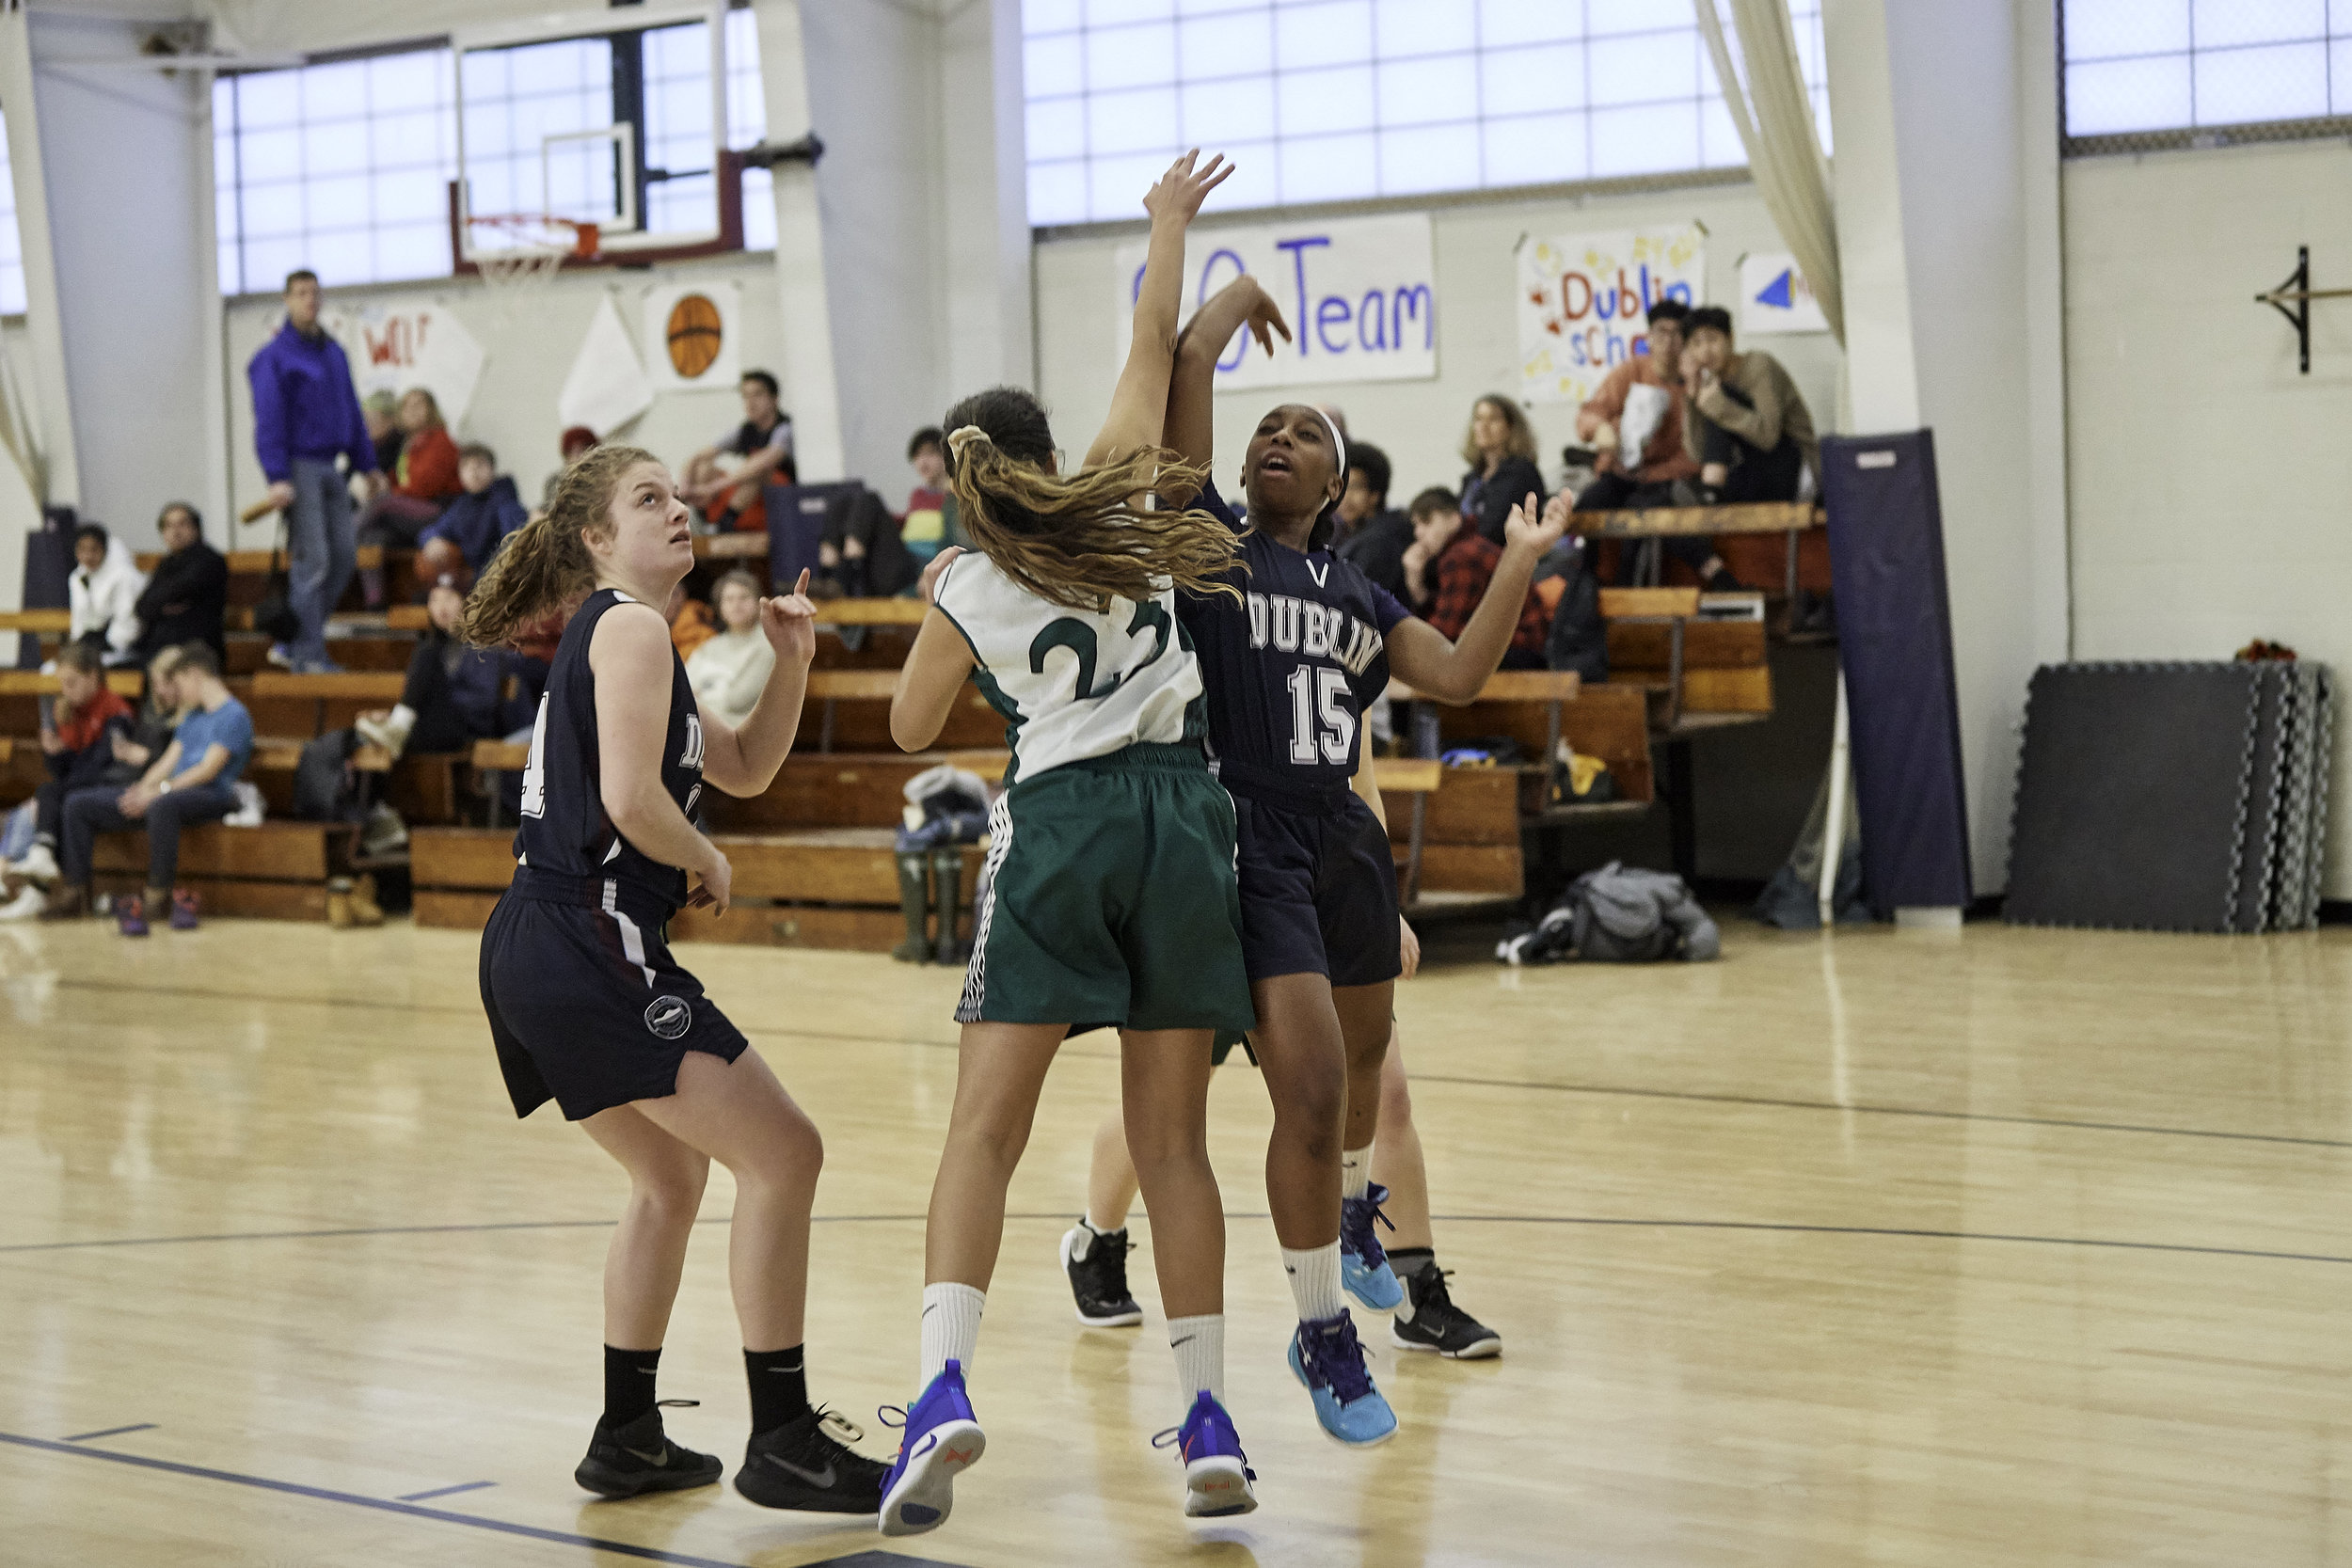 Basketball vs Putney School, February 9, 2019 - 167072.jpg